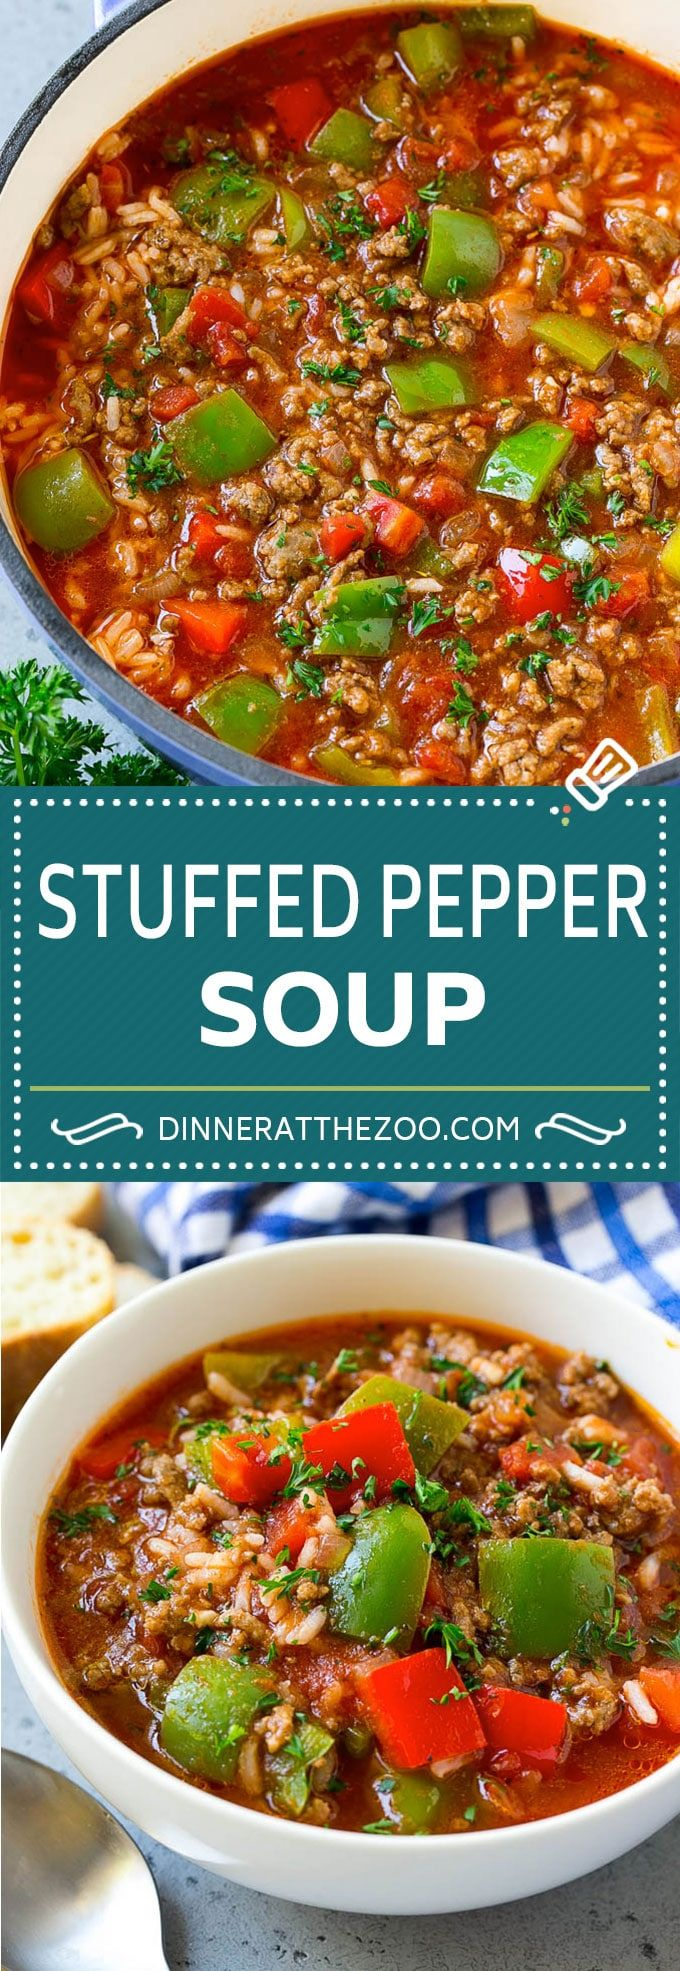 Stuffed Pepper Soup Recipe Beef And Rice Soup Stuffed Peppers Peppers Soup Beef Rice Dinner Di Healthy Soup Recipes Stuffed Peppers Easy Soup Recipes